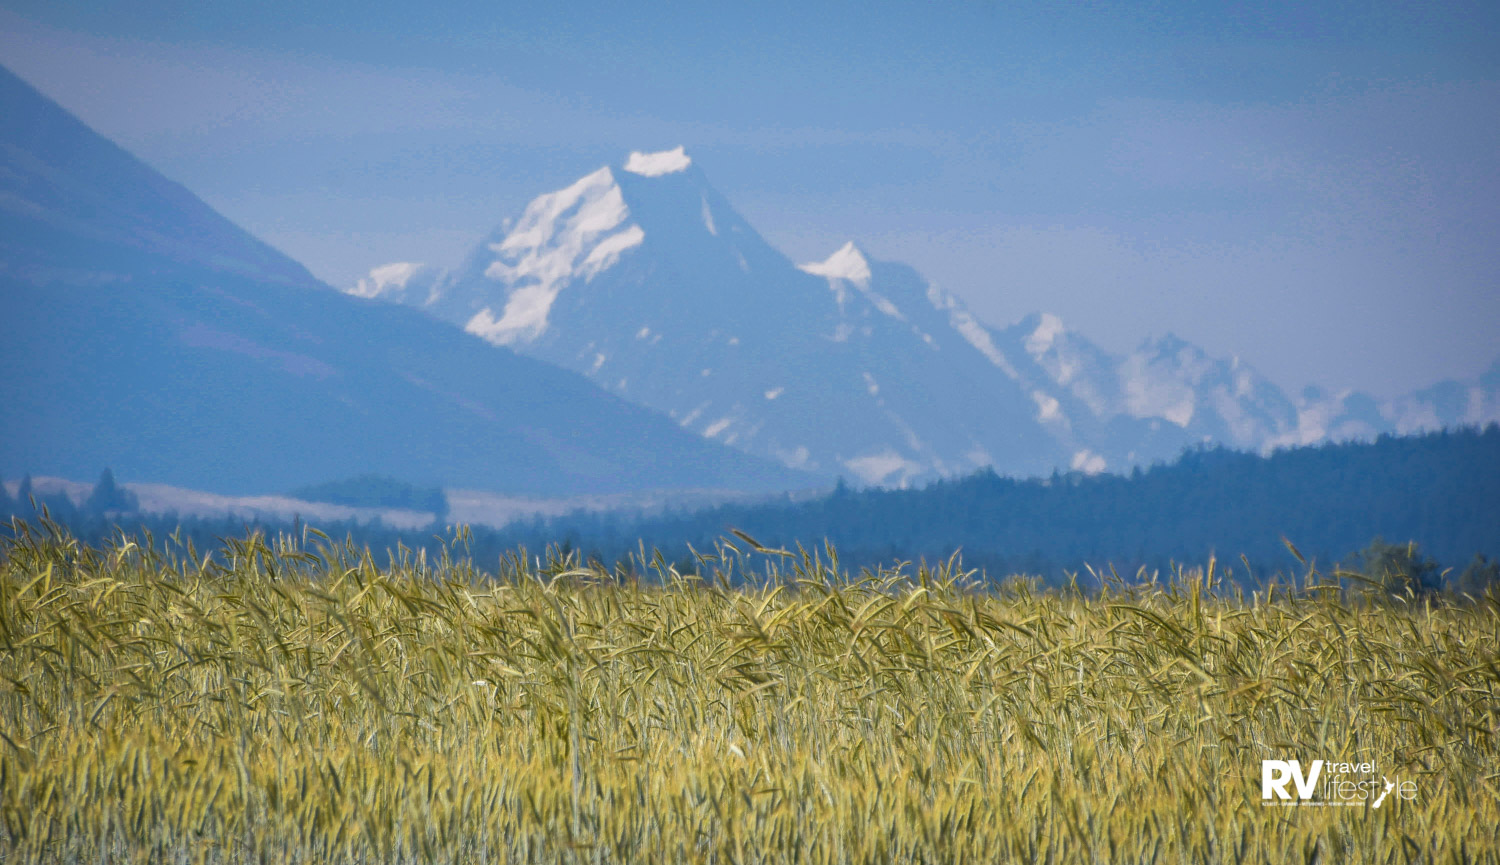 Golden fields and snow peaked mountains